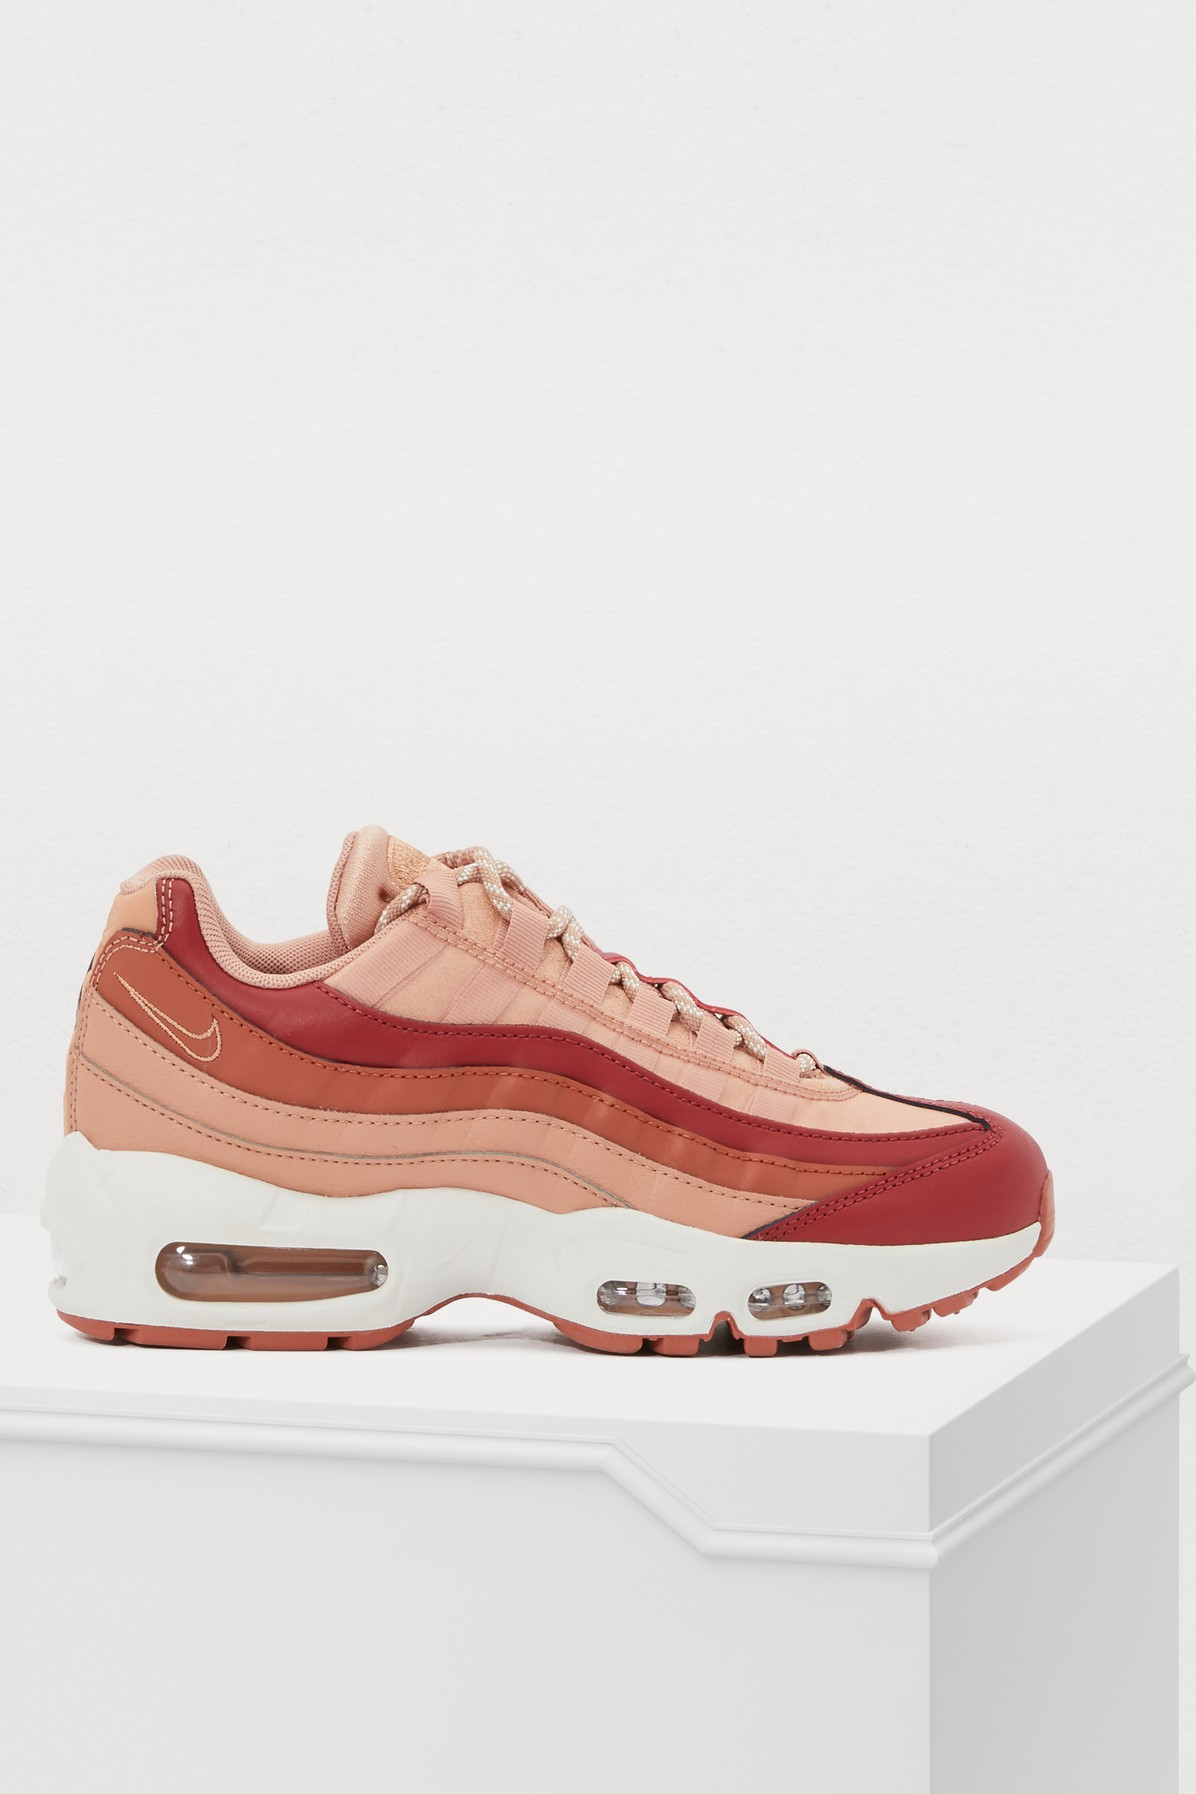 a3a551b8c9 Nike Air Max 95 Suede And Leather Sneakers In Blush | ModeSens